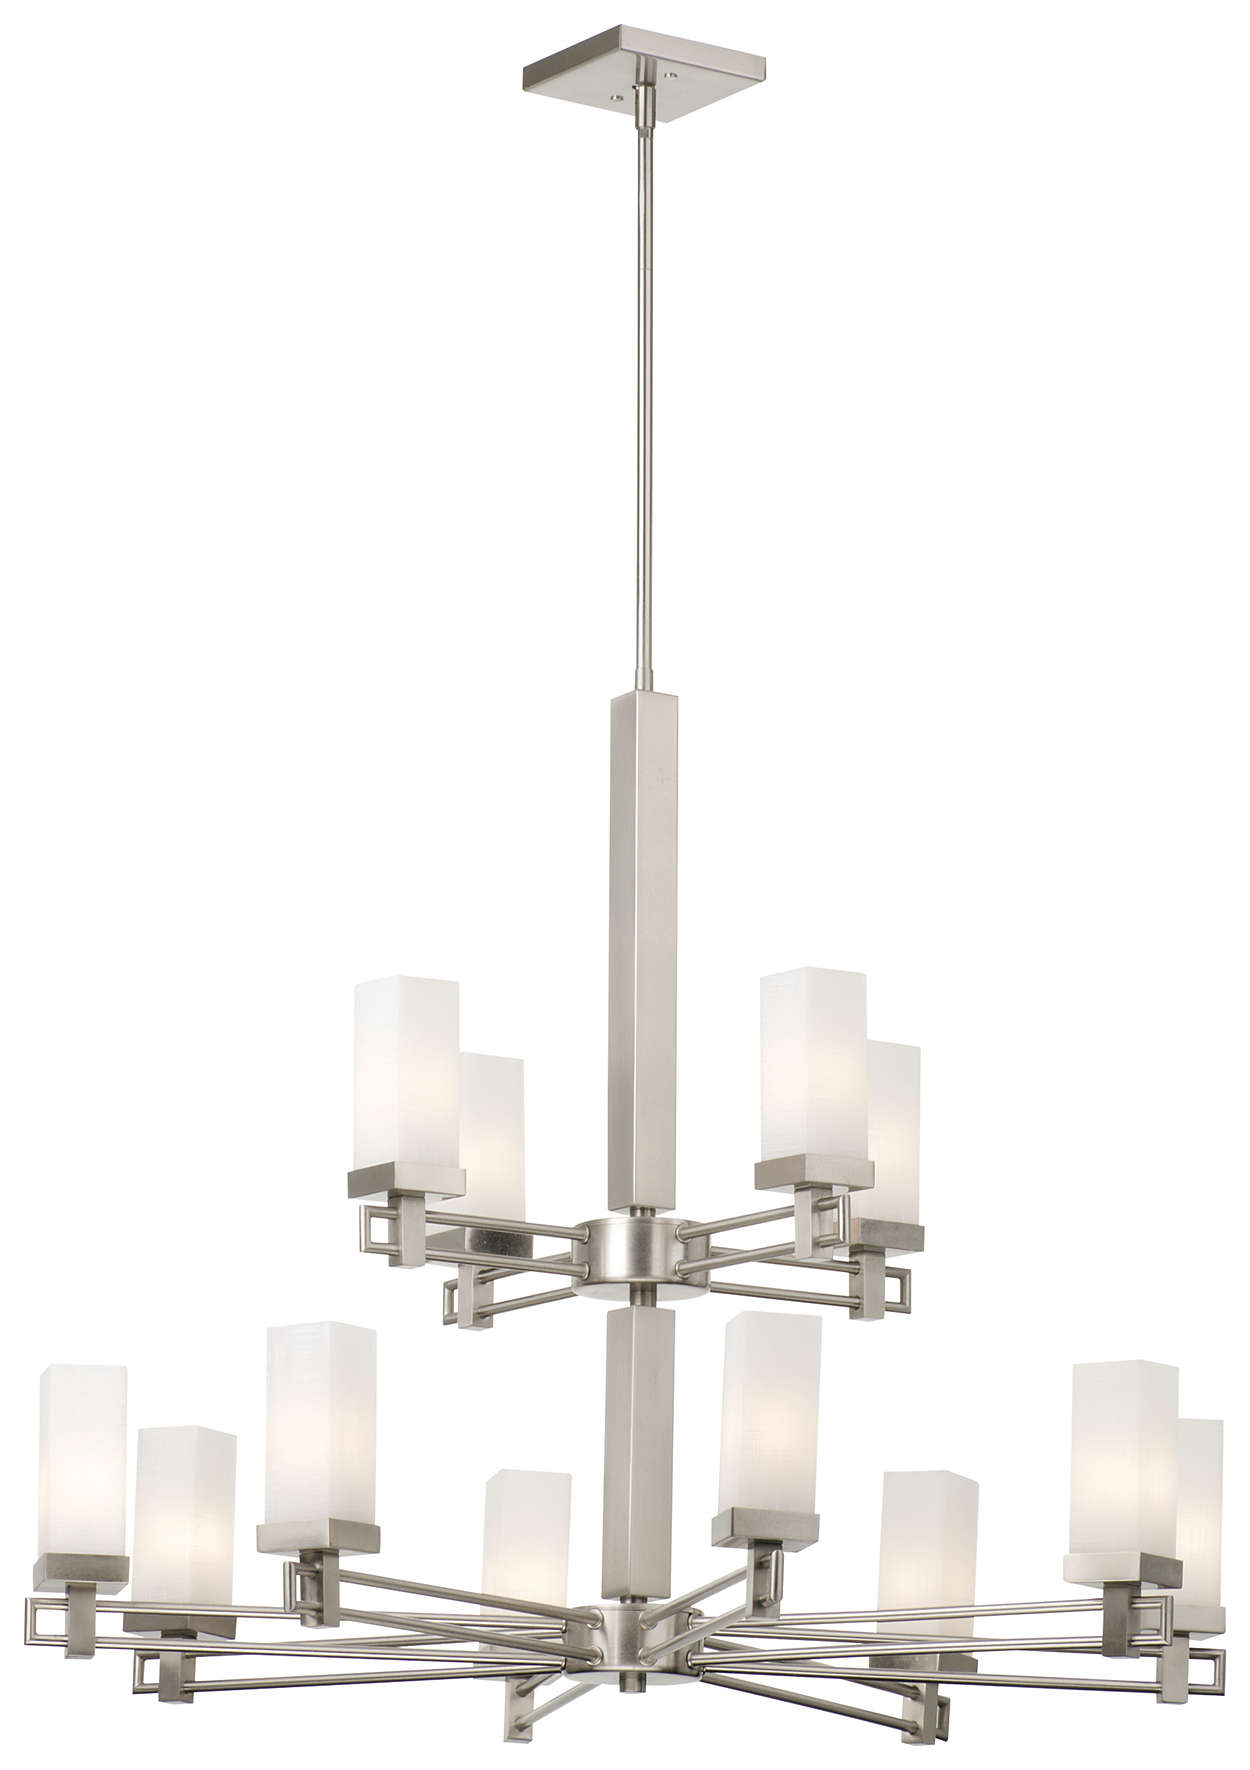 Casa 12-light Chandelier in Satin Nickel finish